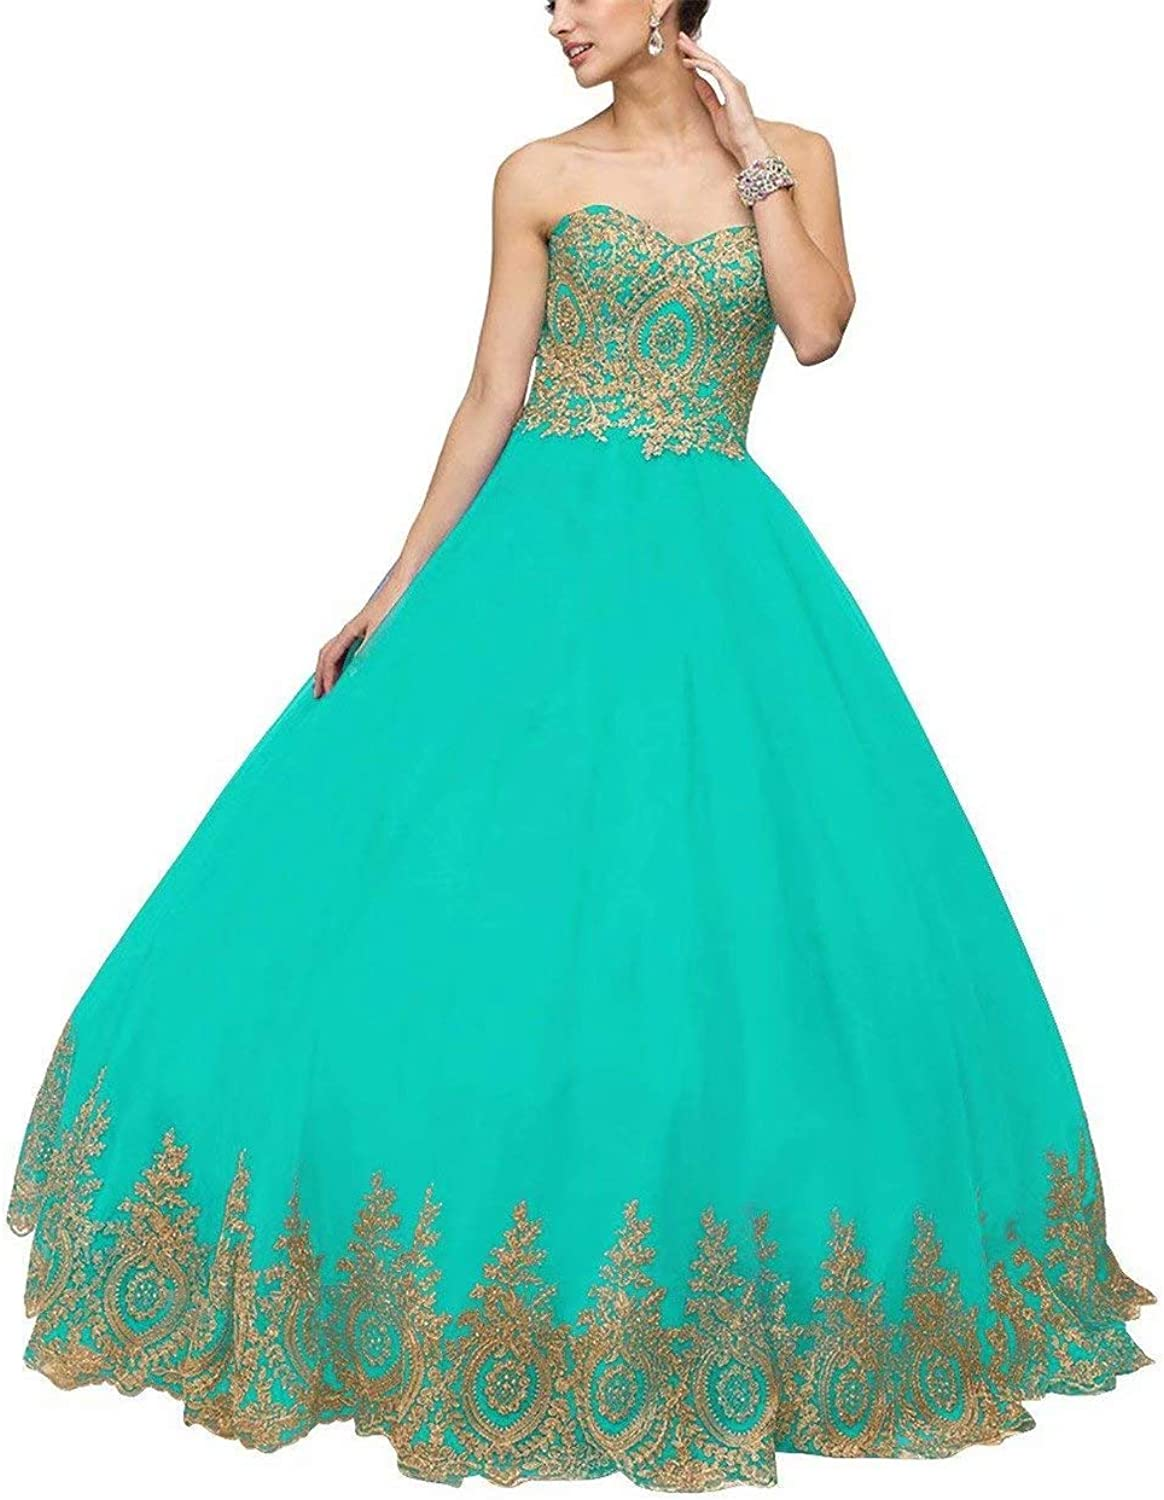 HAiliFier Women's Lace Appplique Quinceanera Dress Long Tulle Prom Birthday Ball Gown